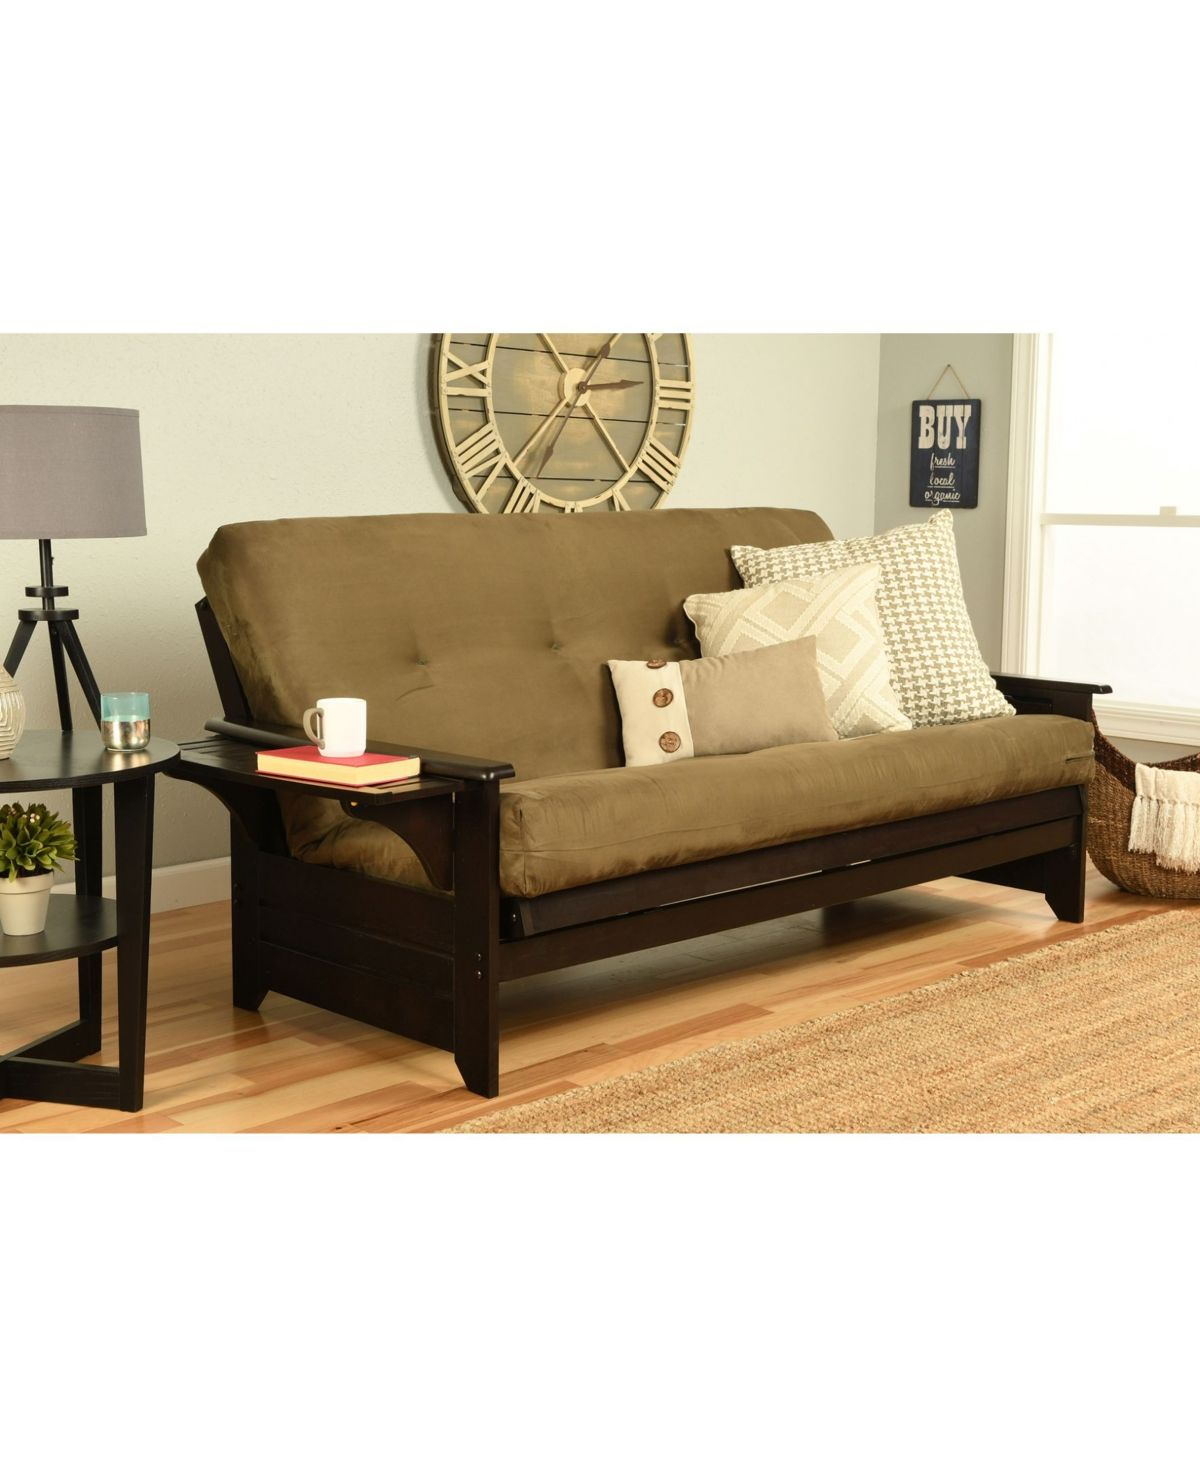 Kodiak Phoenix Futon In Espresso Finish